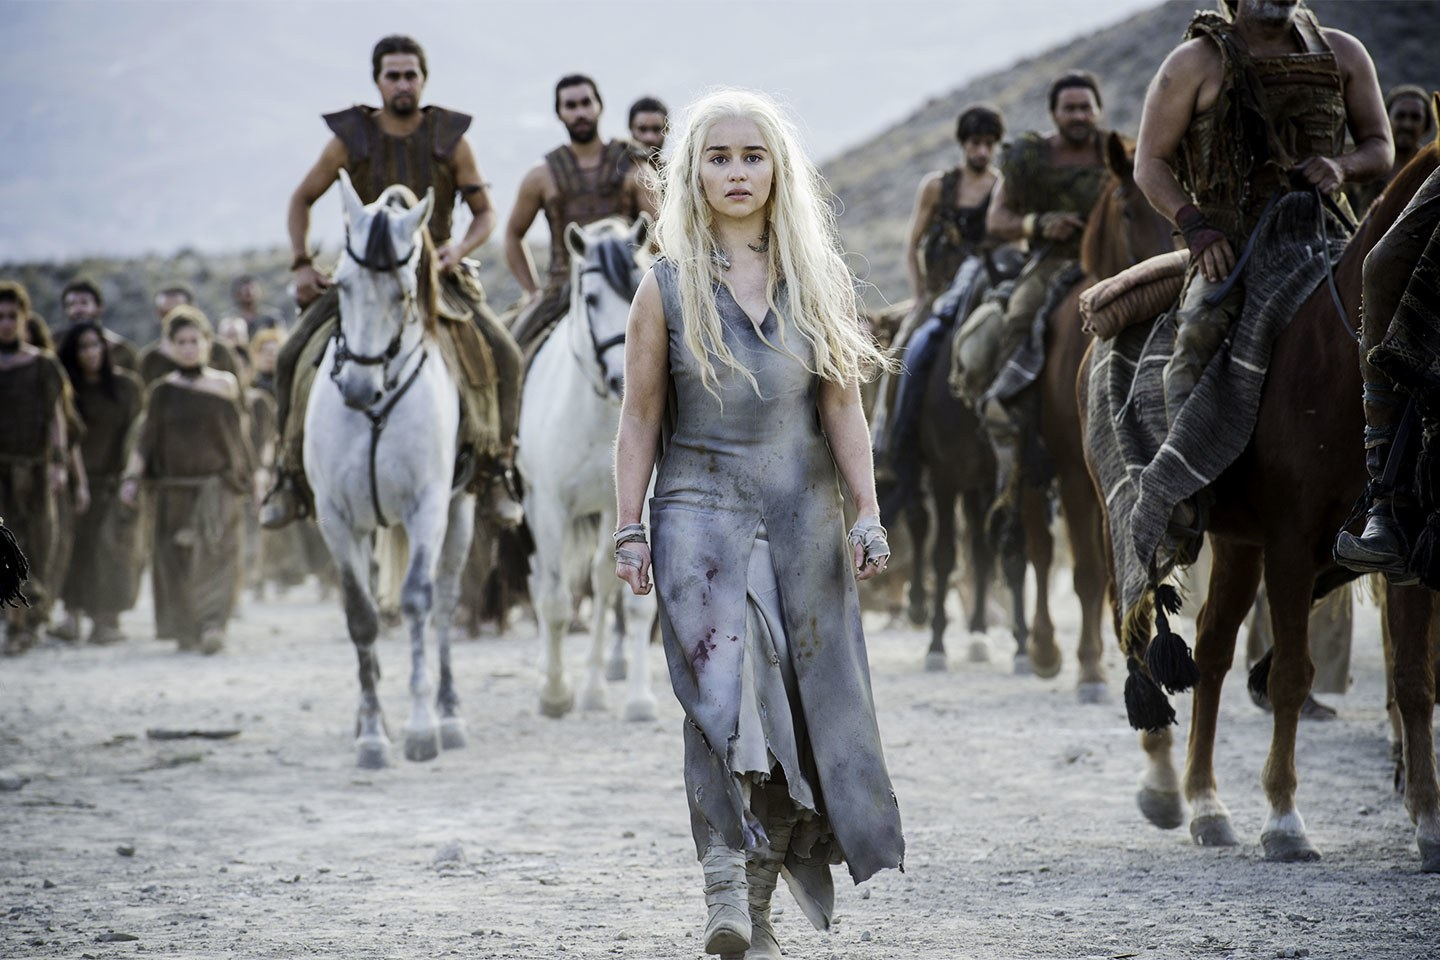 U.S. charges Iranian over 'Game of Thrones' HBO hack